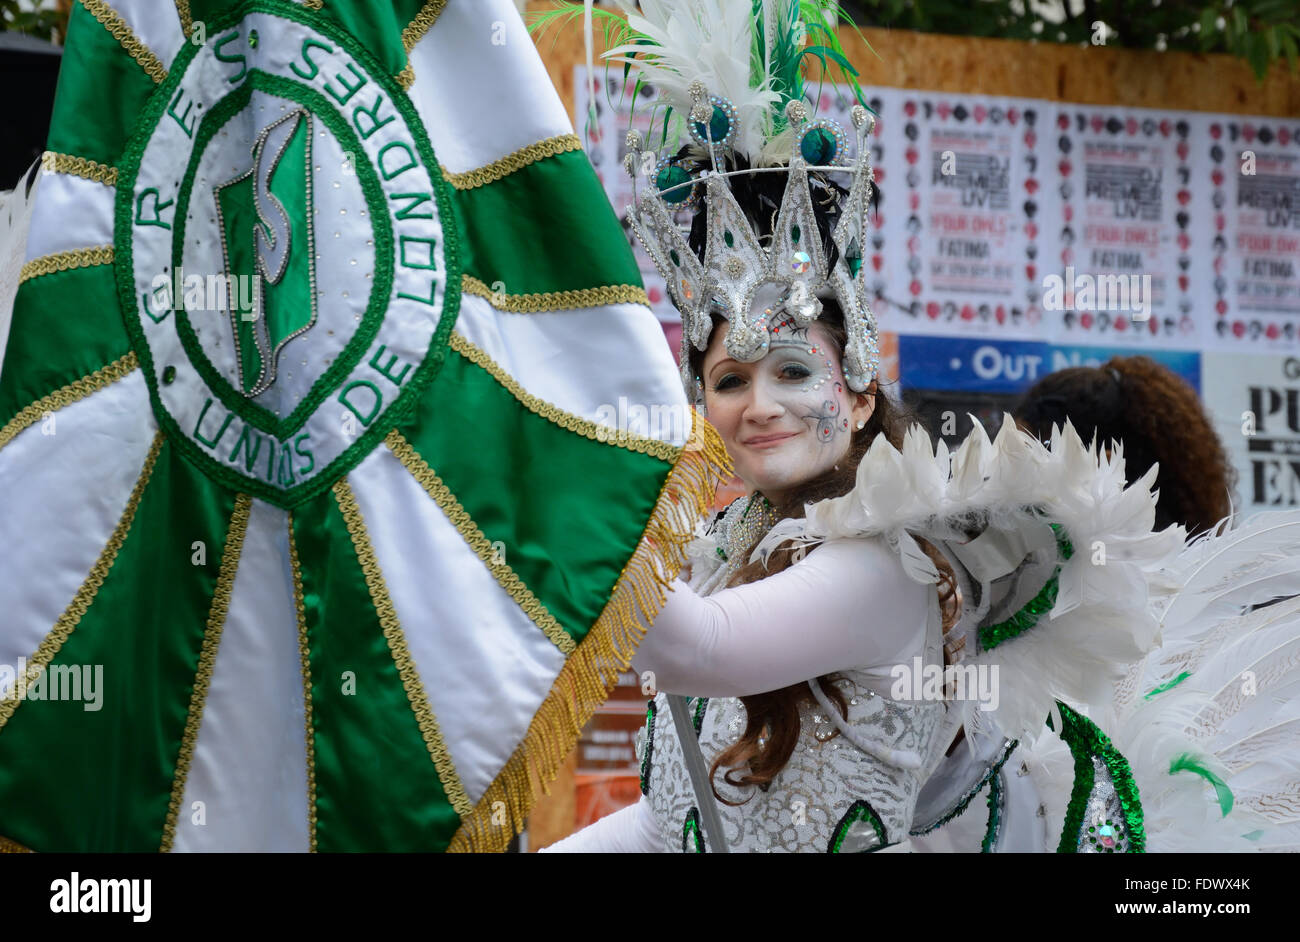 Ice Queen, at Notting Hill carnival, London, England. - Stock Image